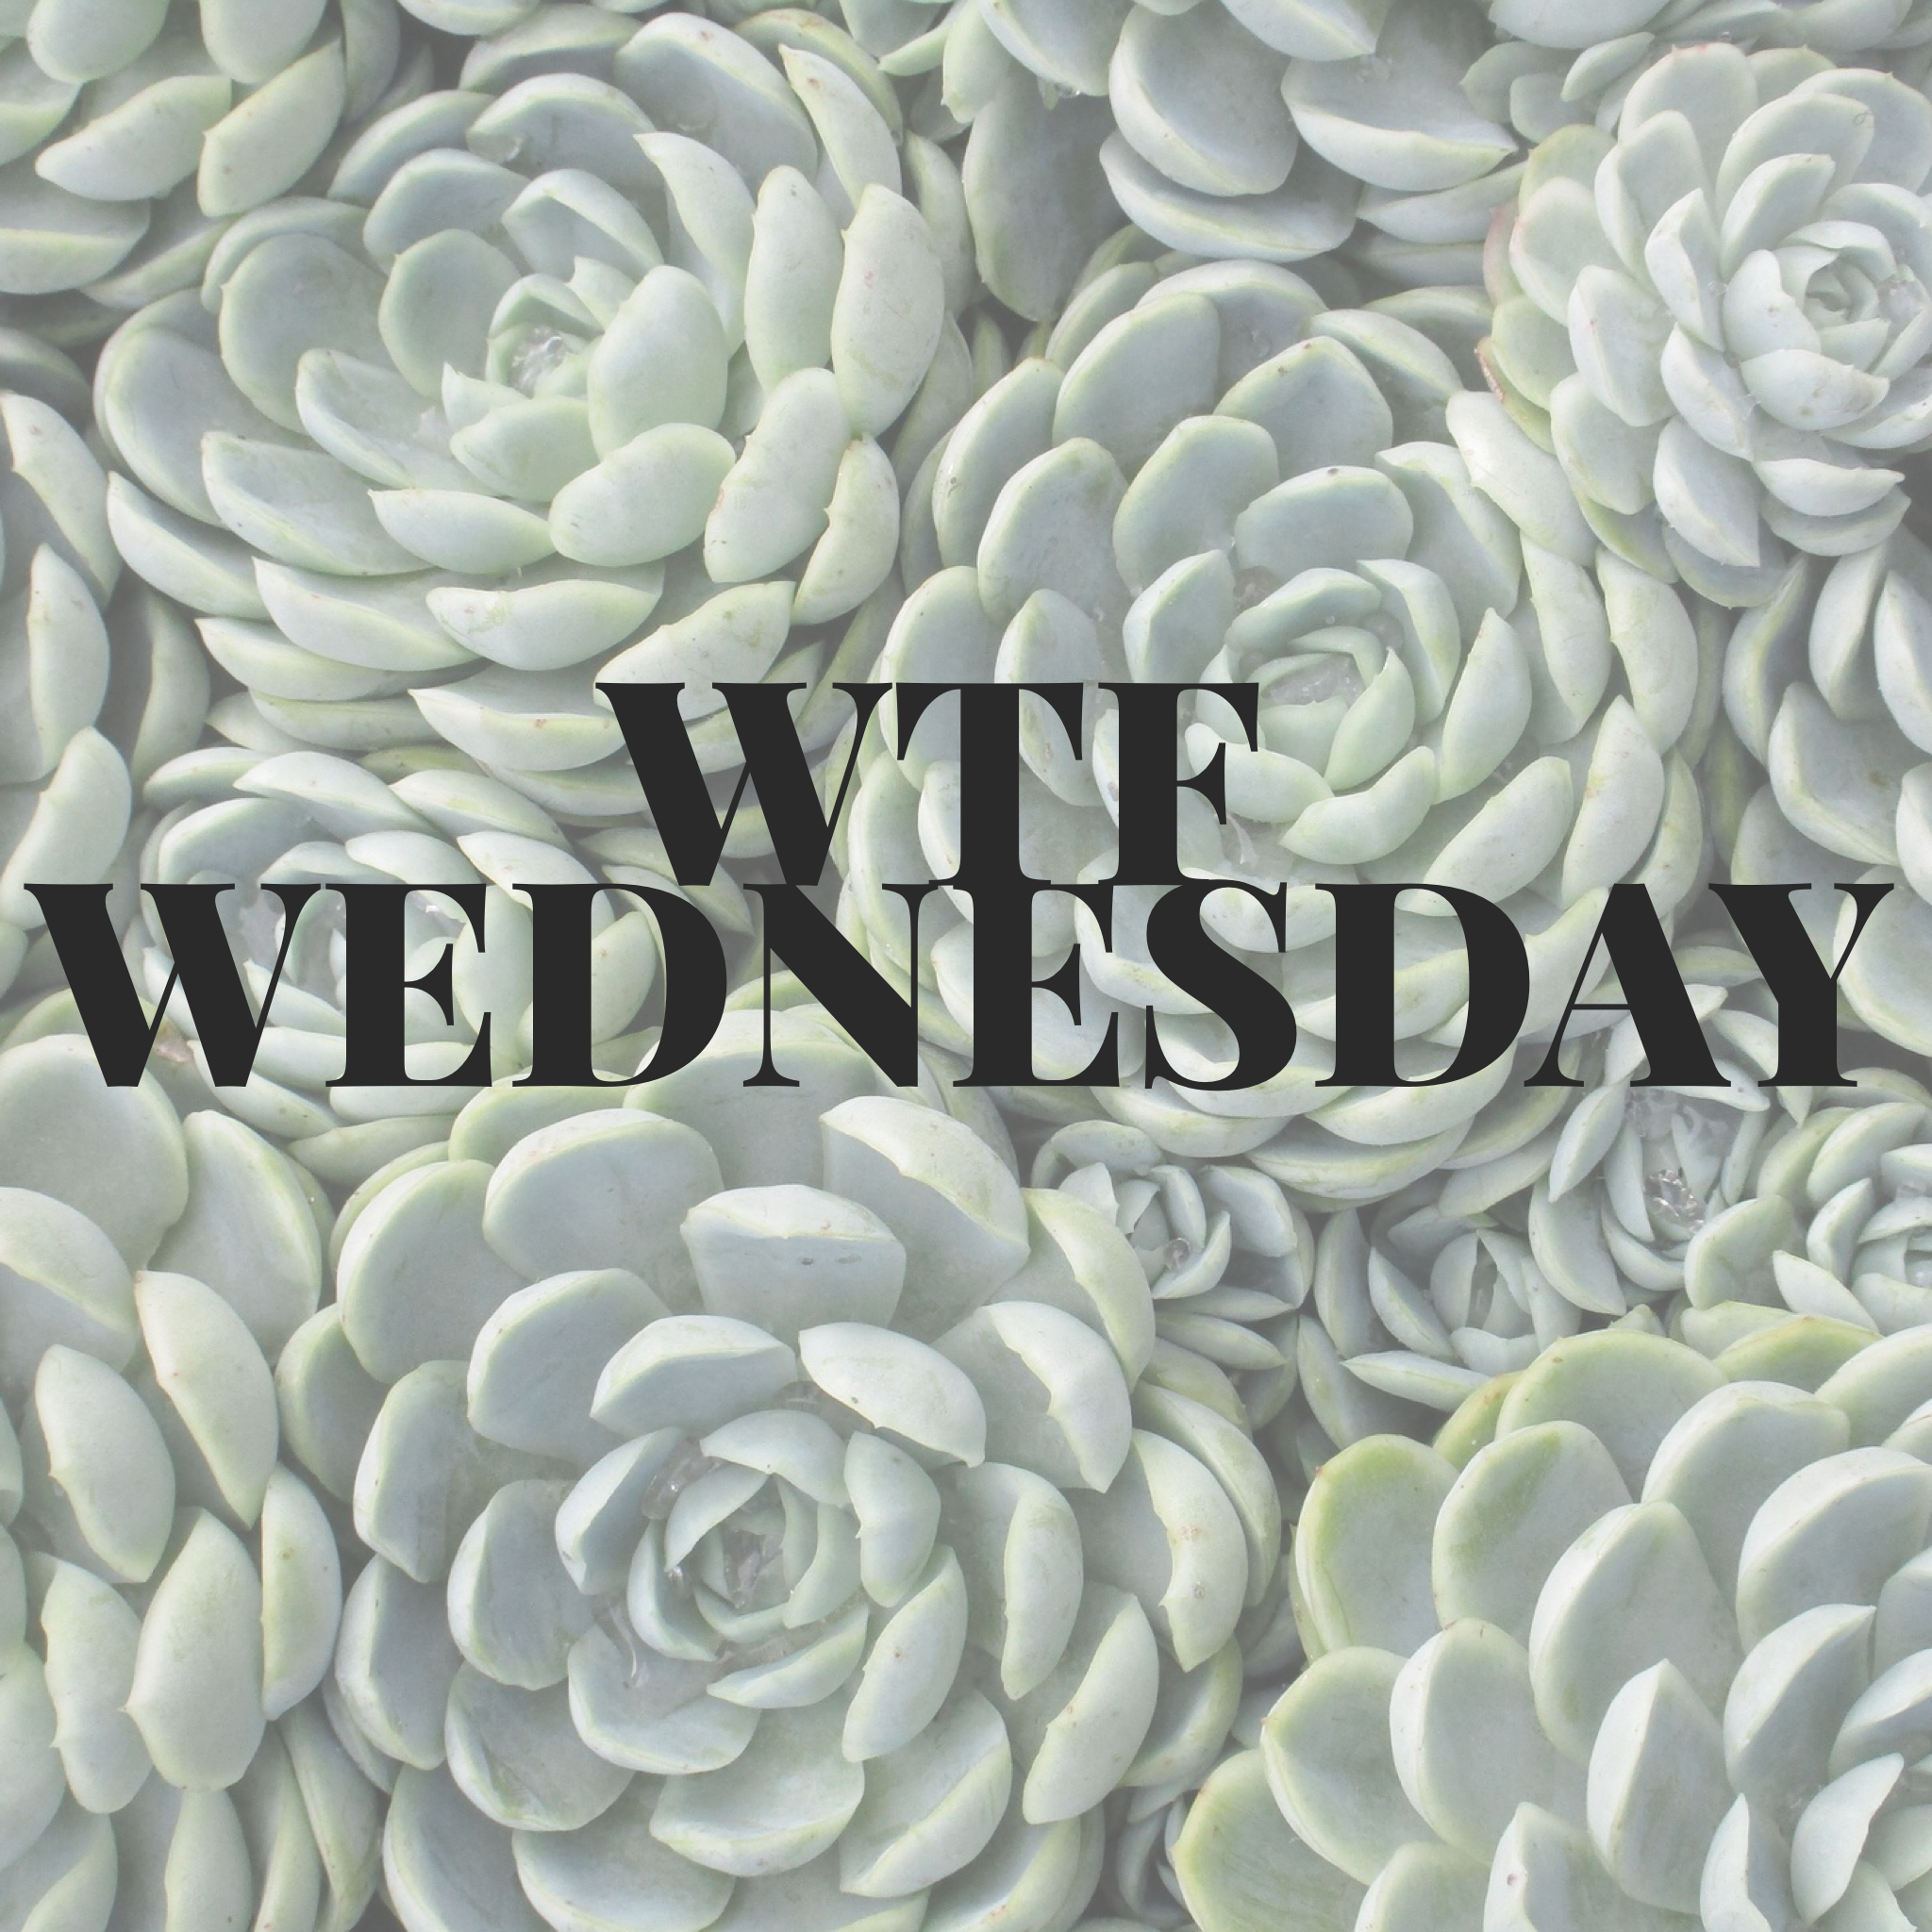 It's another week of WTF! - (Aren't they all?) Are you doing an exercise where you sit or stand in the well of the reformer? What's the name of that one? I'll wait…